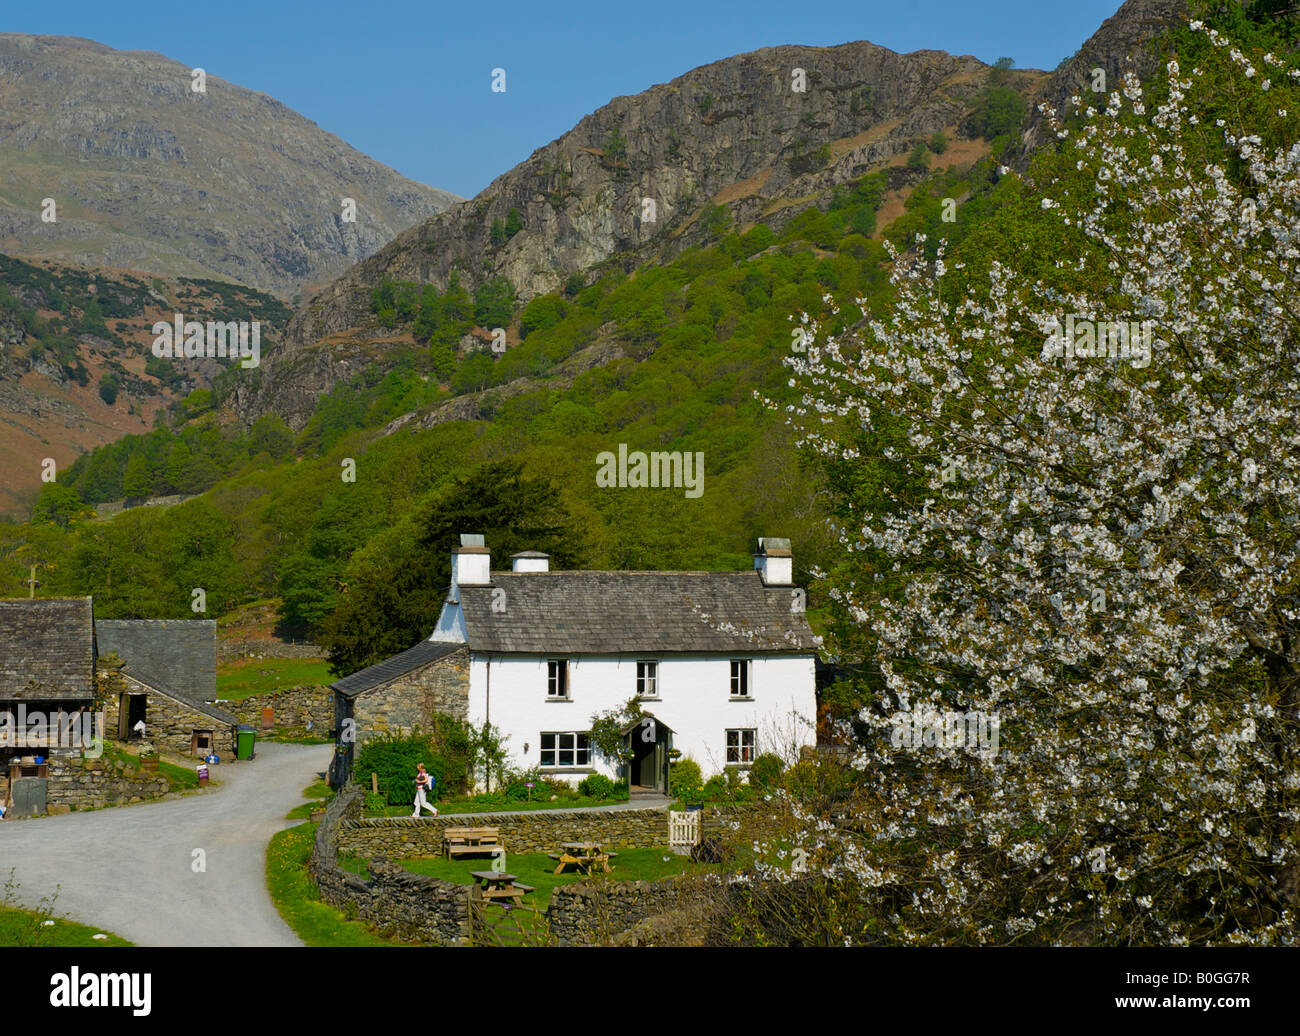 Yew Tree Farm near Coniston, onced ownd by Beatrix Potter, Lake District National Park, Cumbria, England UK - Stock Image